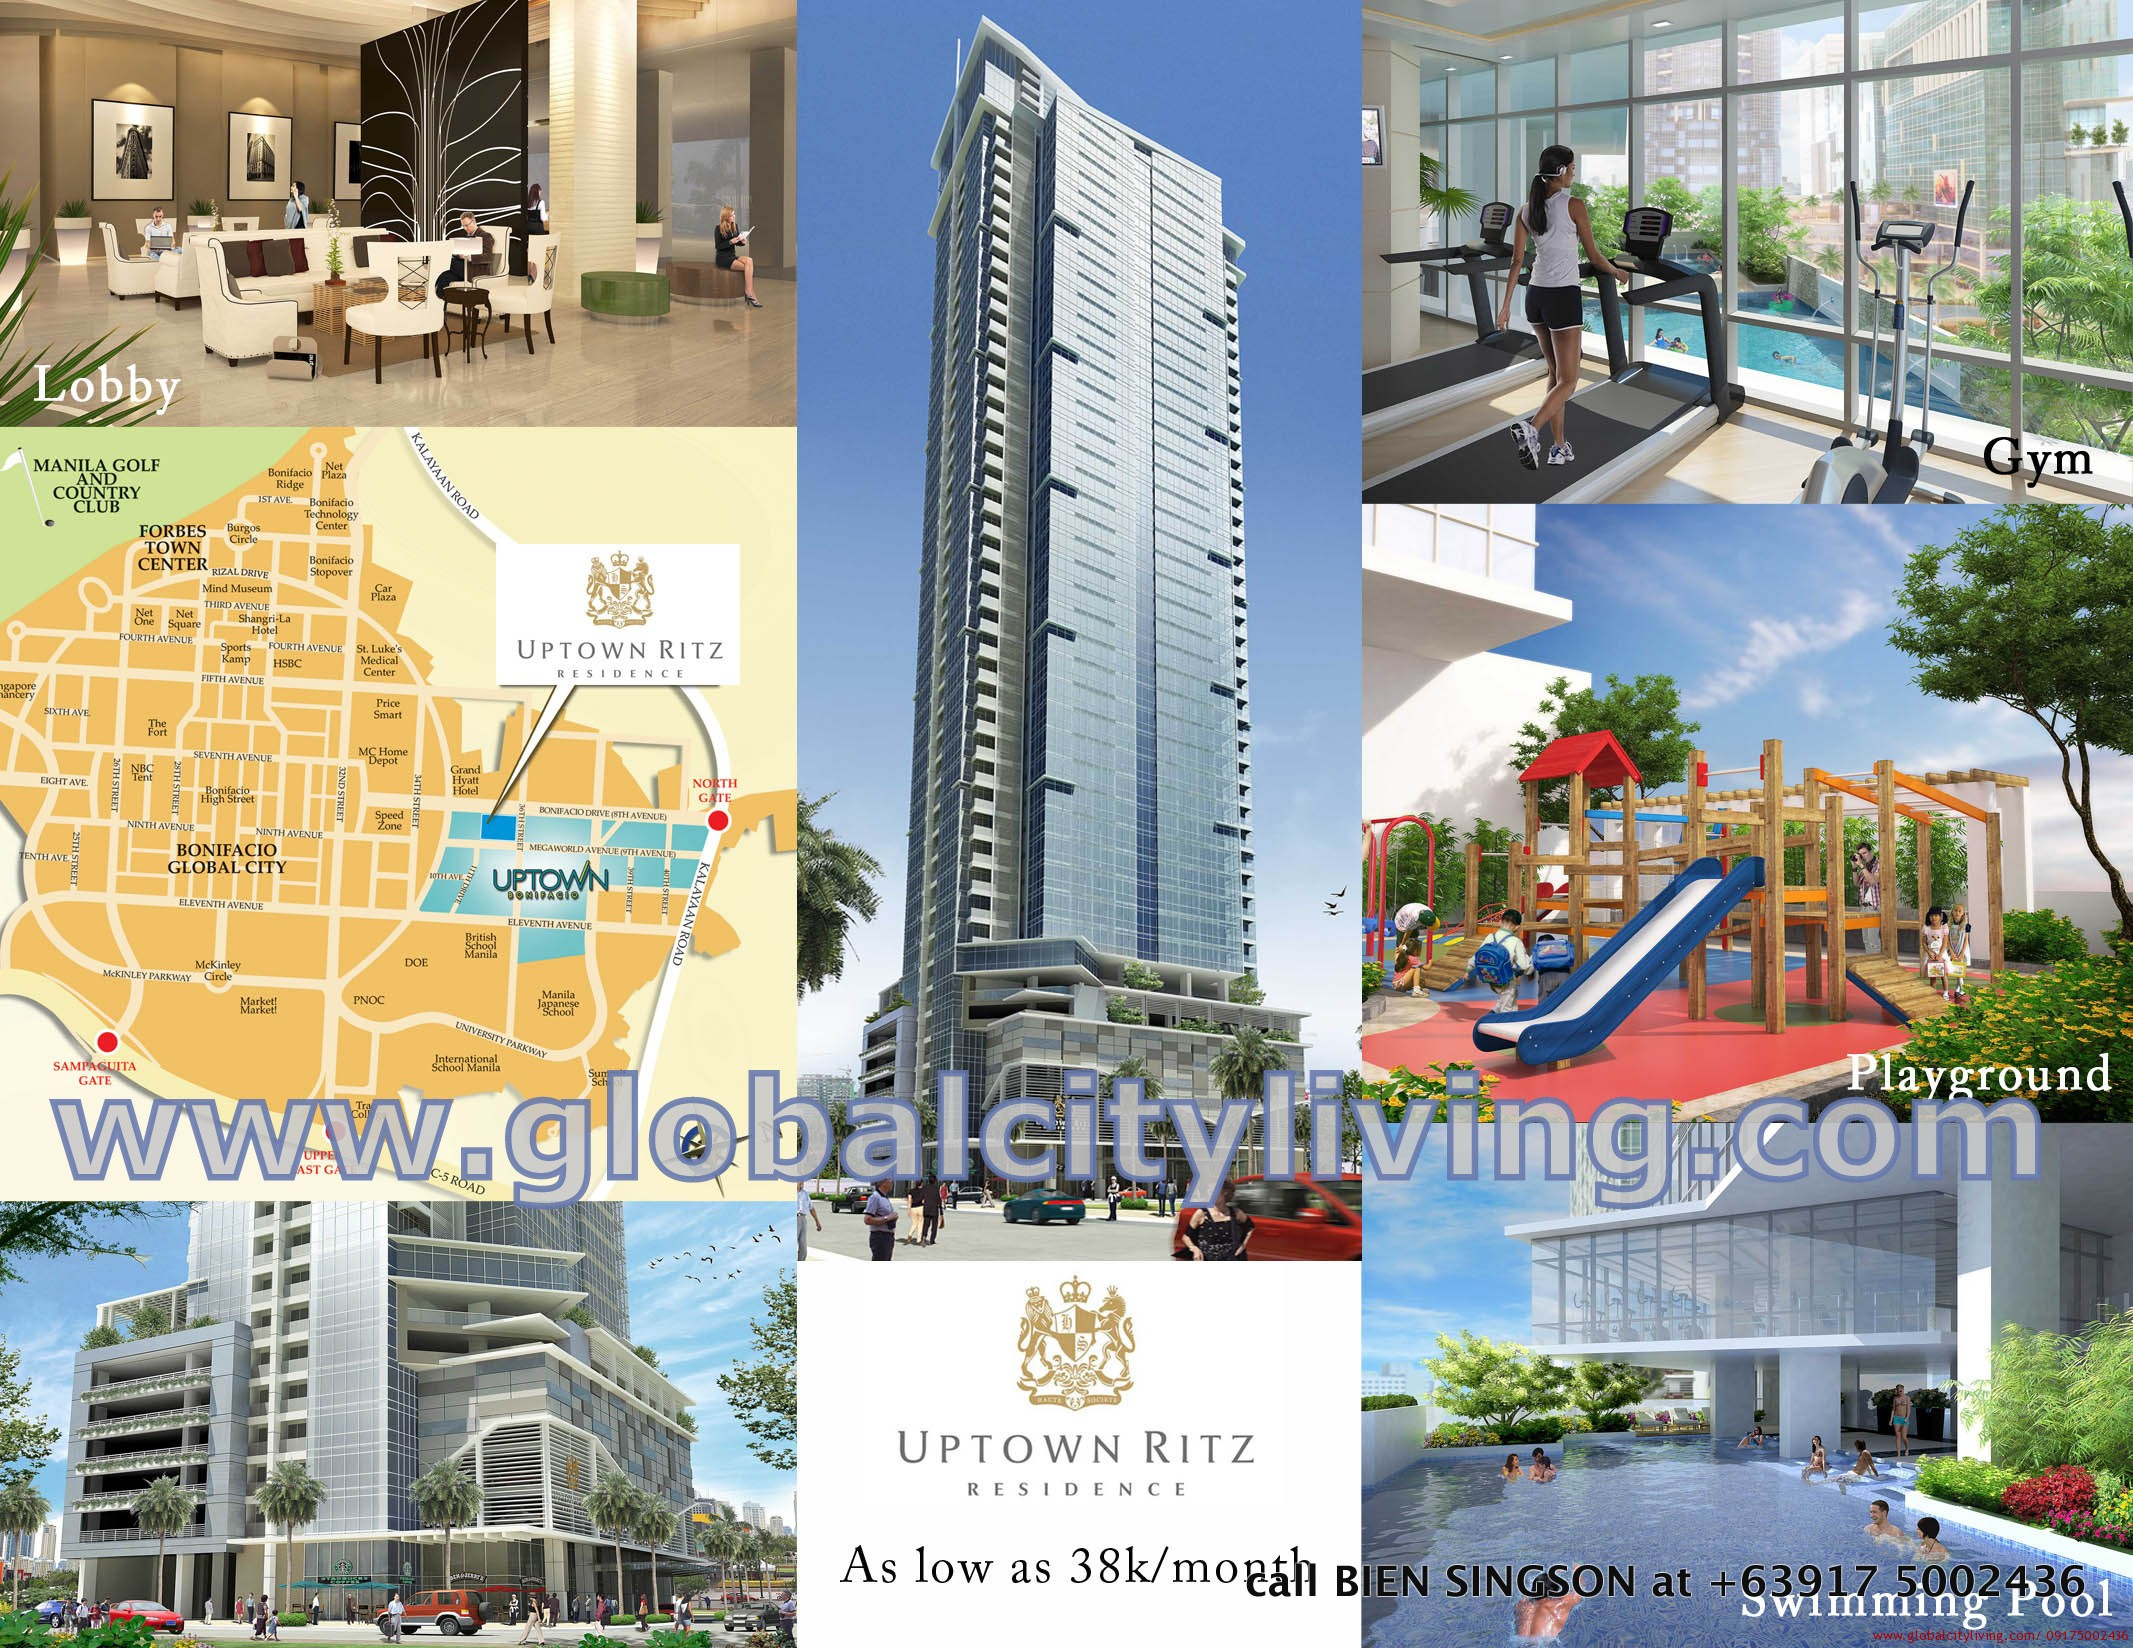 Uptown Ritz Residence in Global City